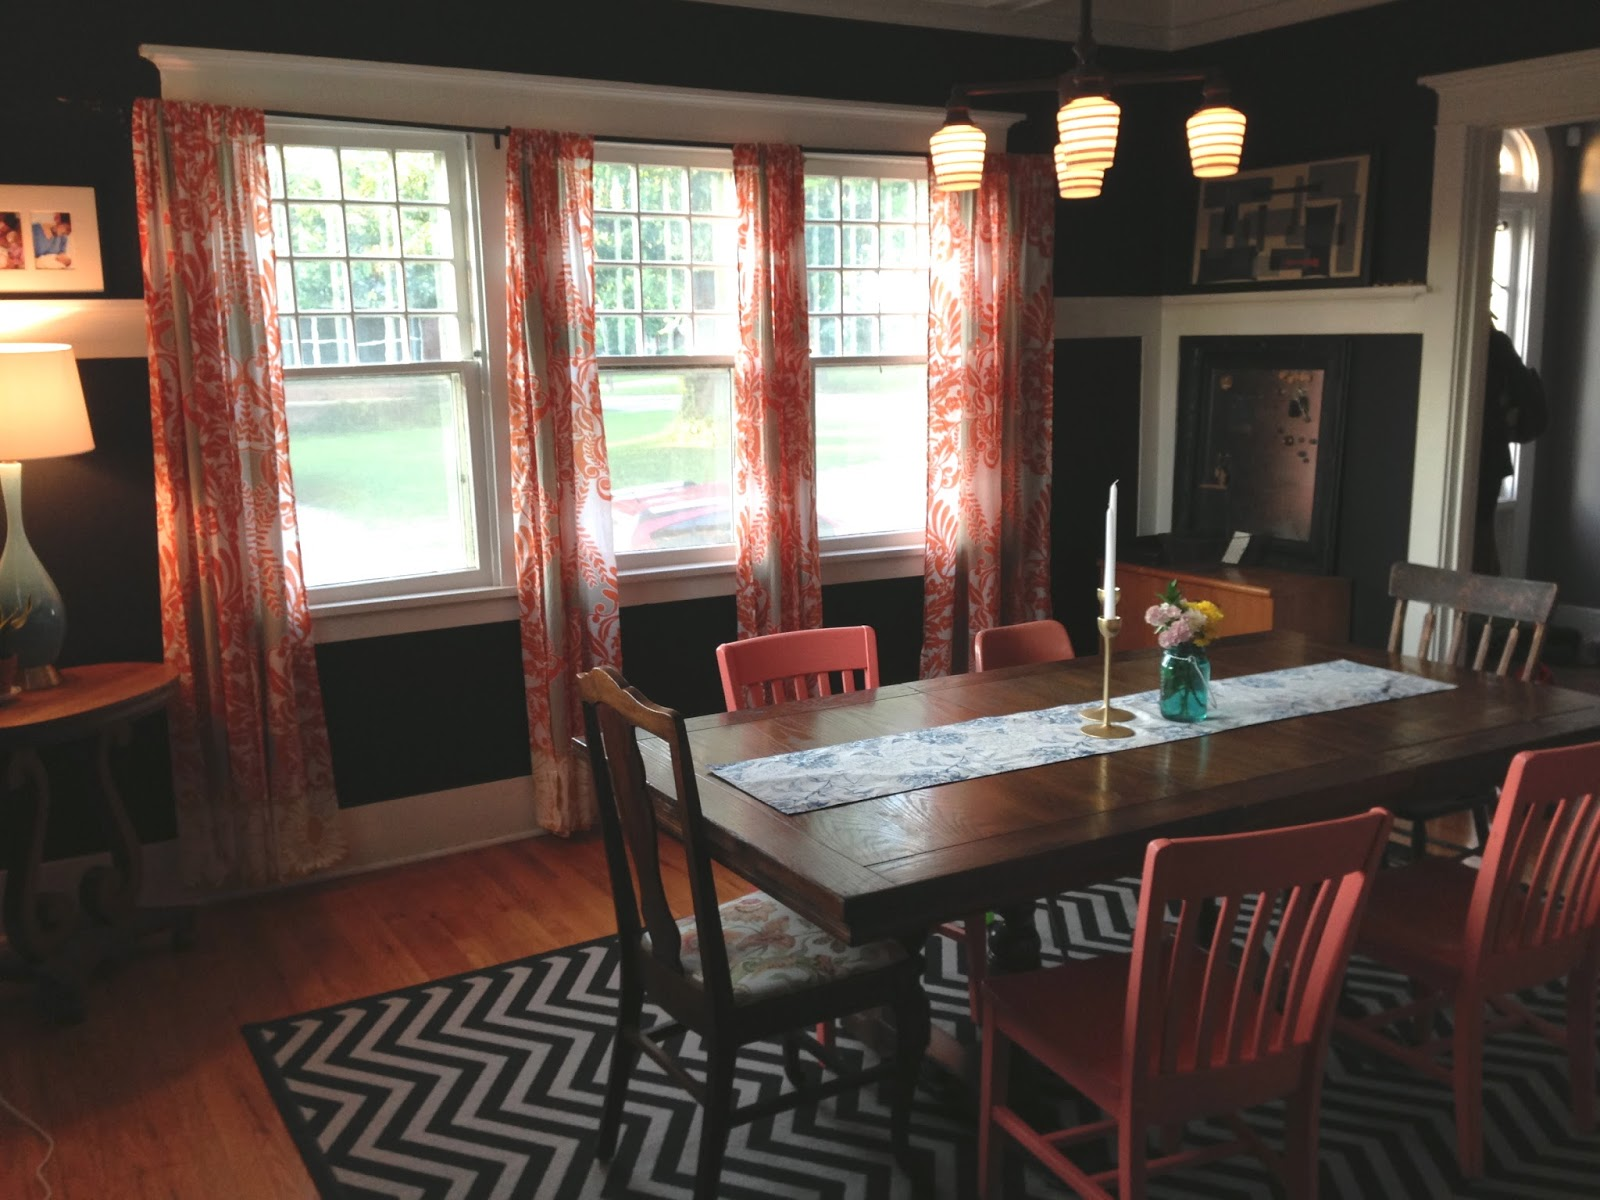 Furniture furthermore dining room china cabi ethan allen furniture on - You May Remember Me Saying We Wanted To Repaint This Room Well The More And More I Added In The Way Of Furnishings And Color The More I Decided I